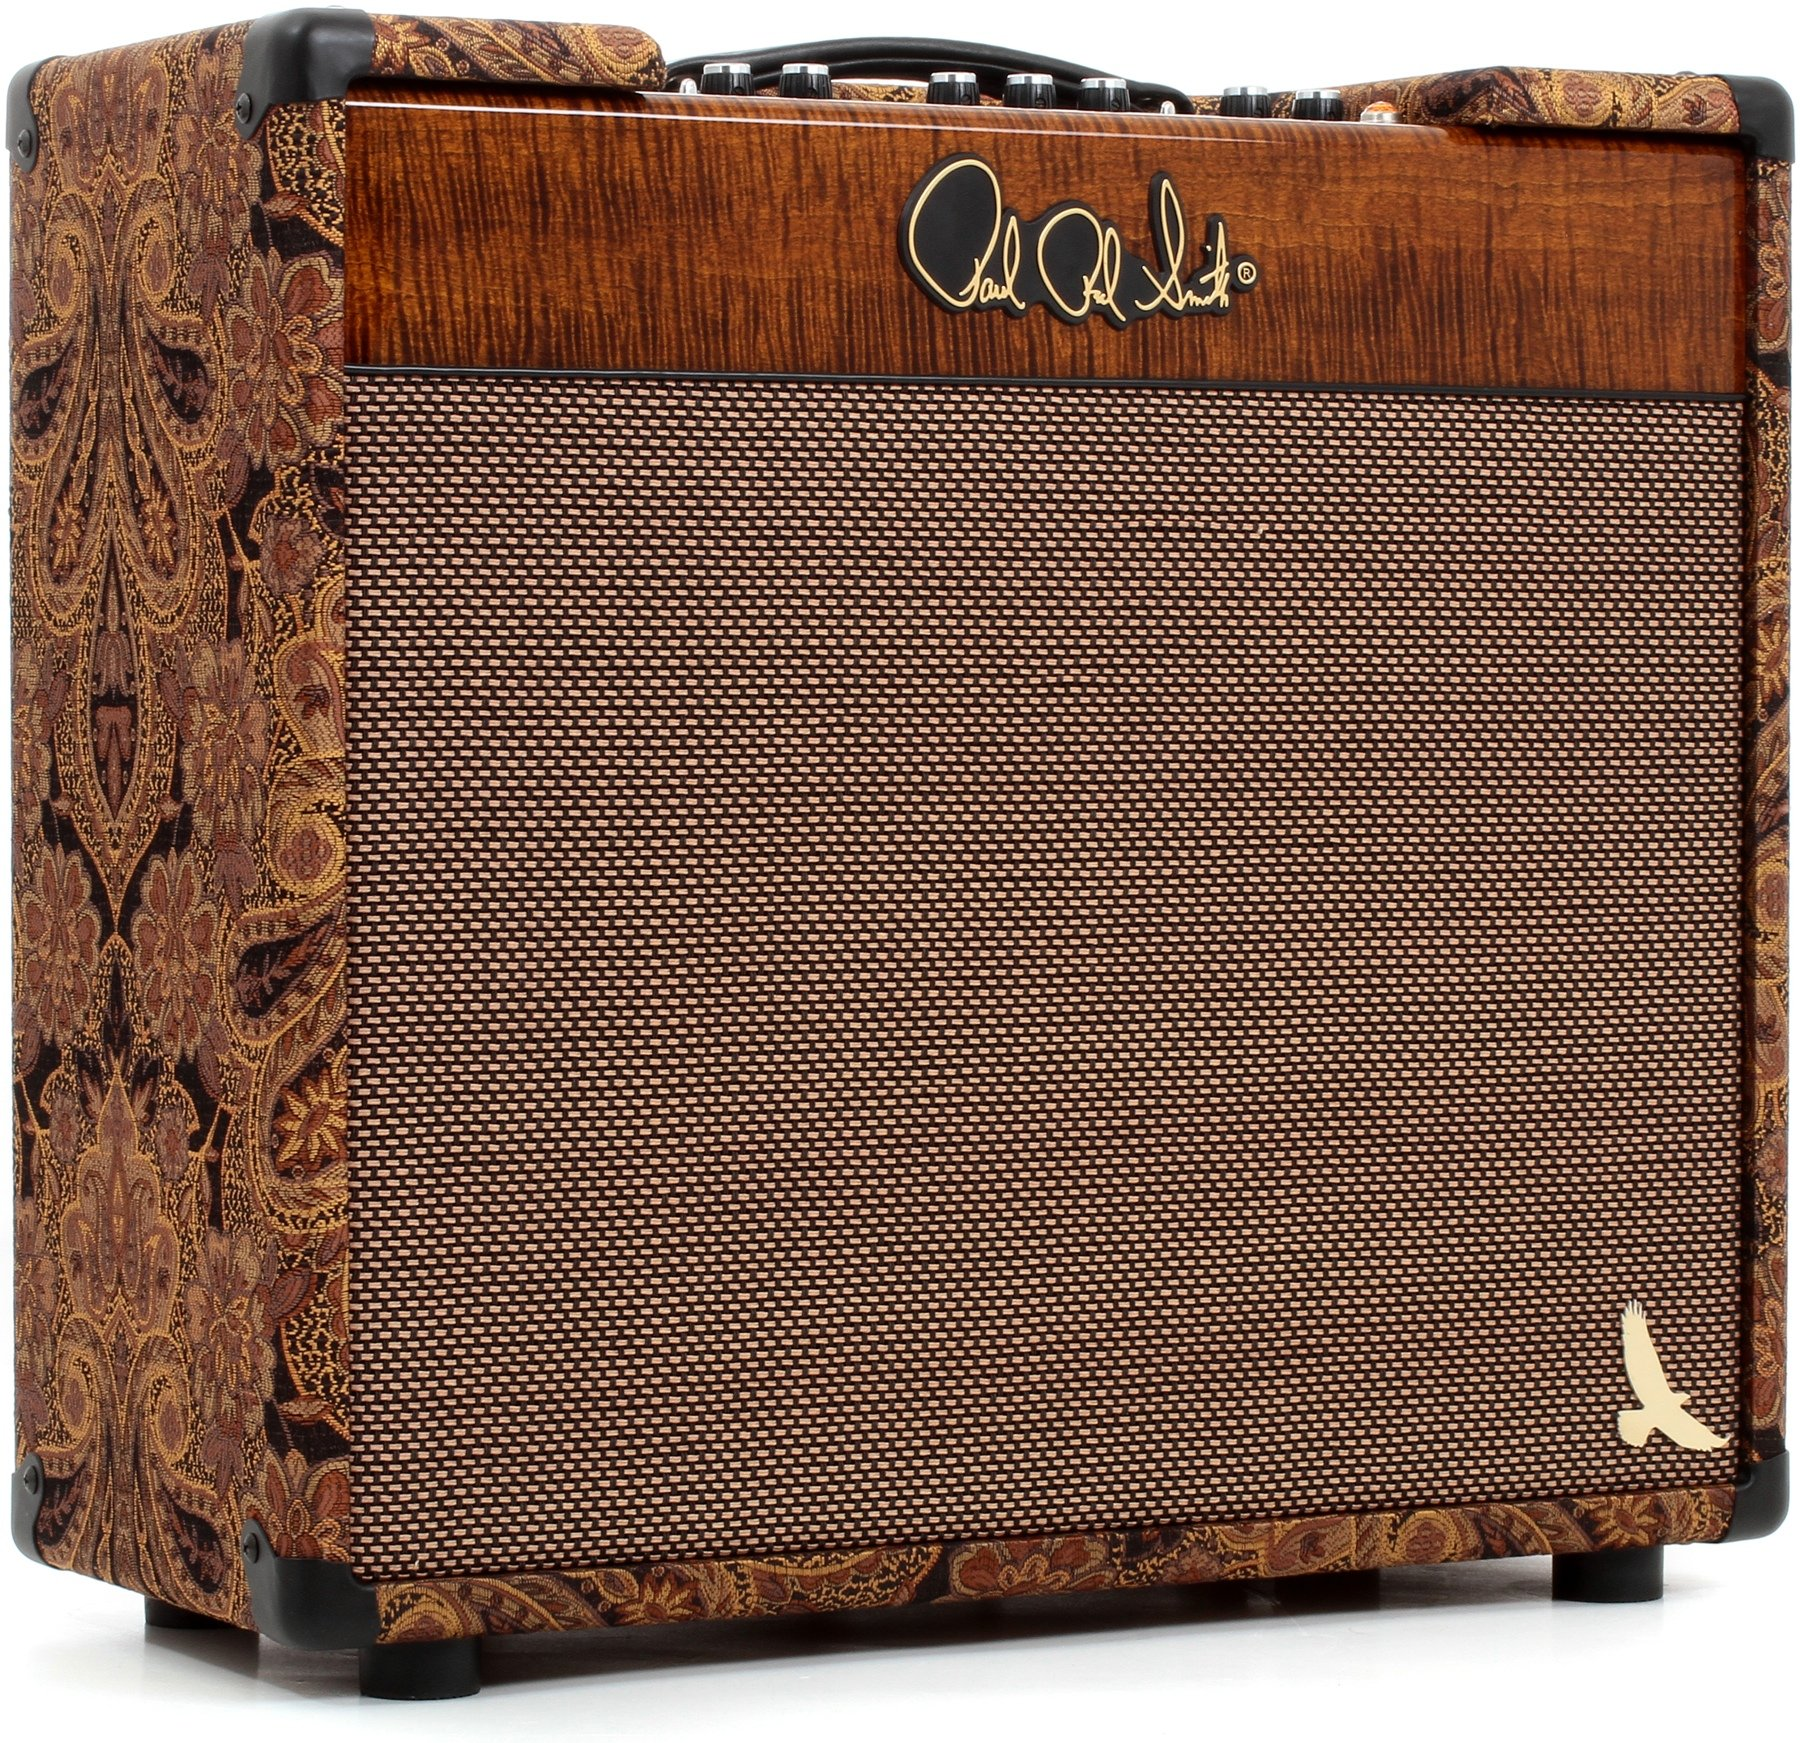 Prs Hxda El34 30 Watt 1x12 Tube Combo Amp Paisley And Black Gold 20w Power Amplifier With